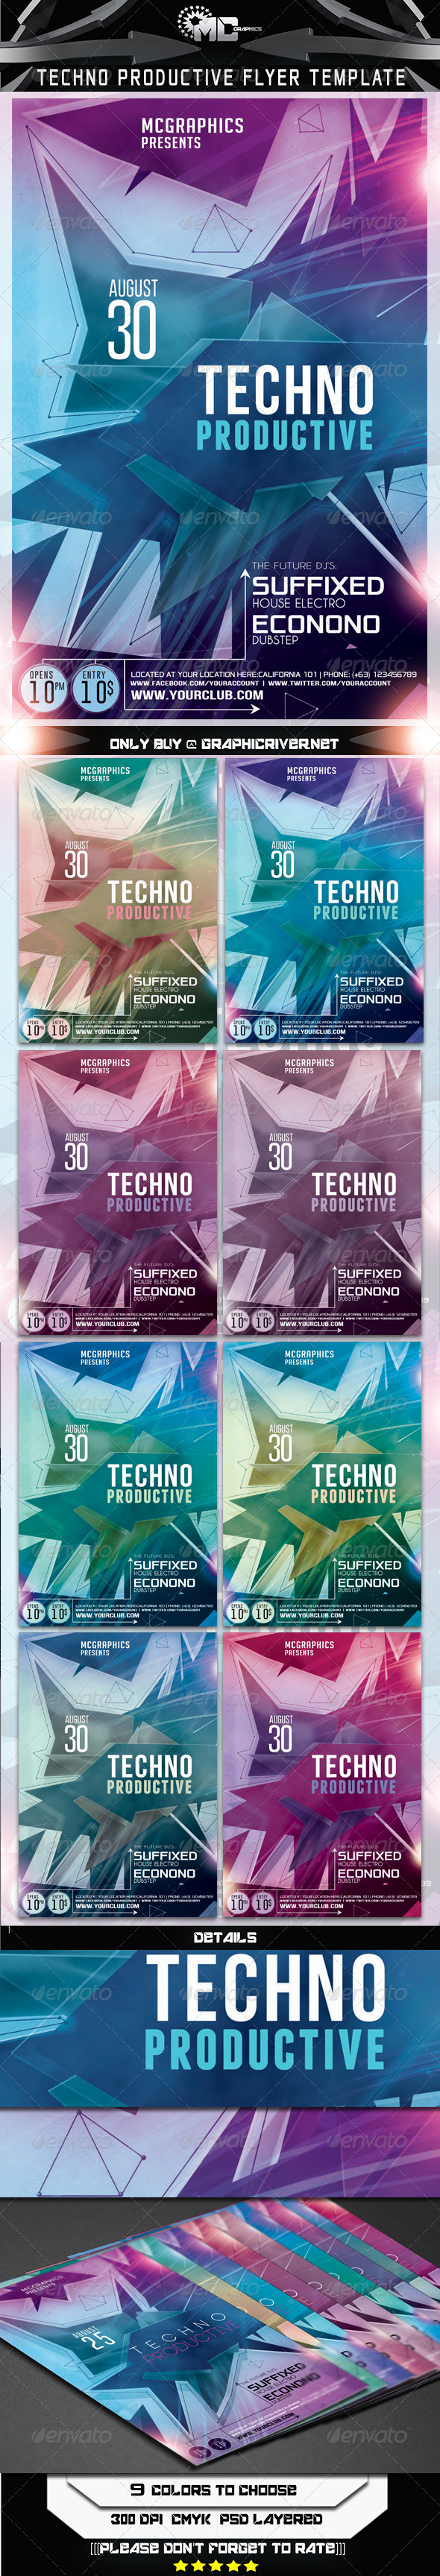 Techno Productive Flyer Template - Flyers Print Templates